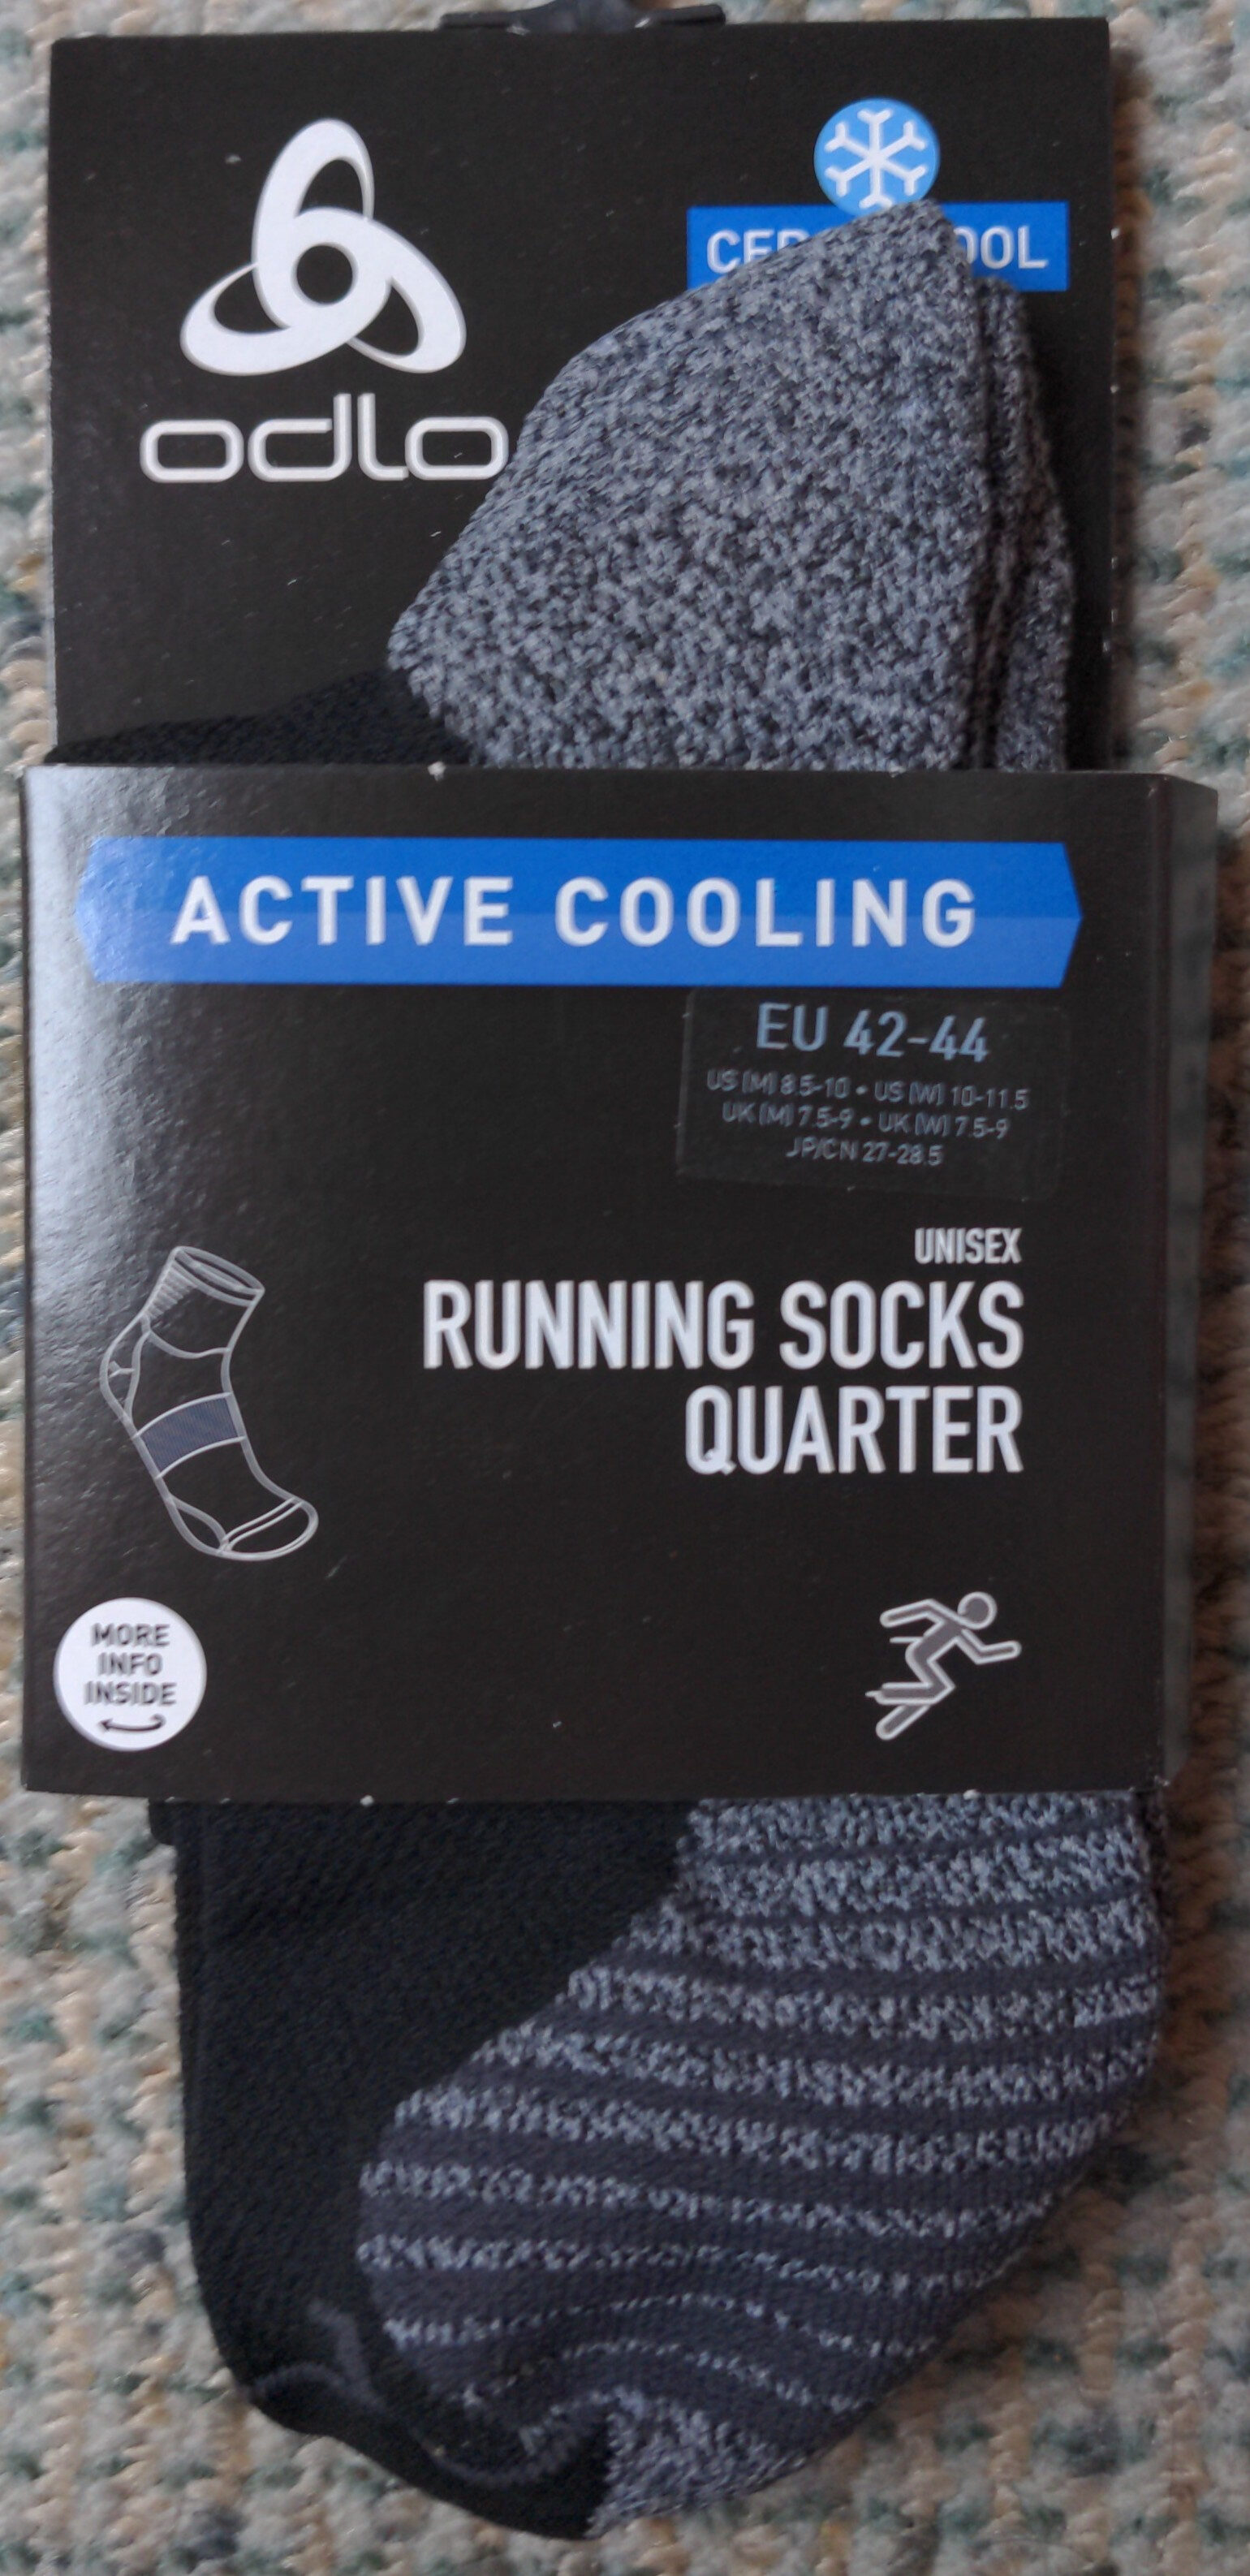 Running socks quarter - Produit - en